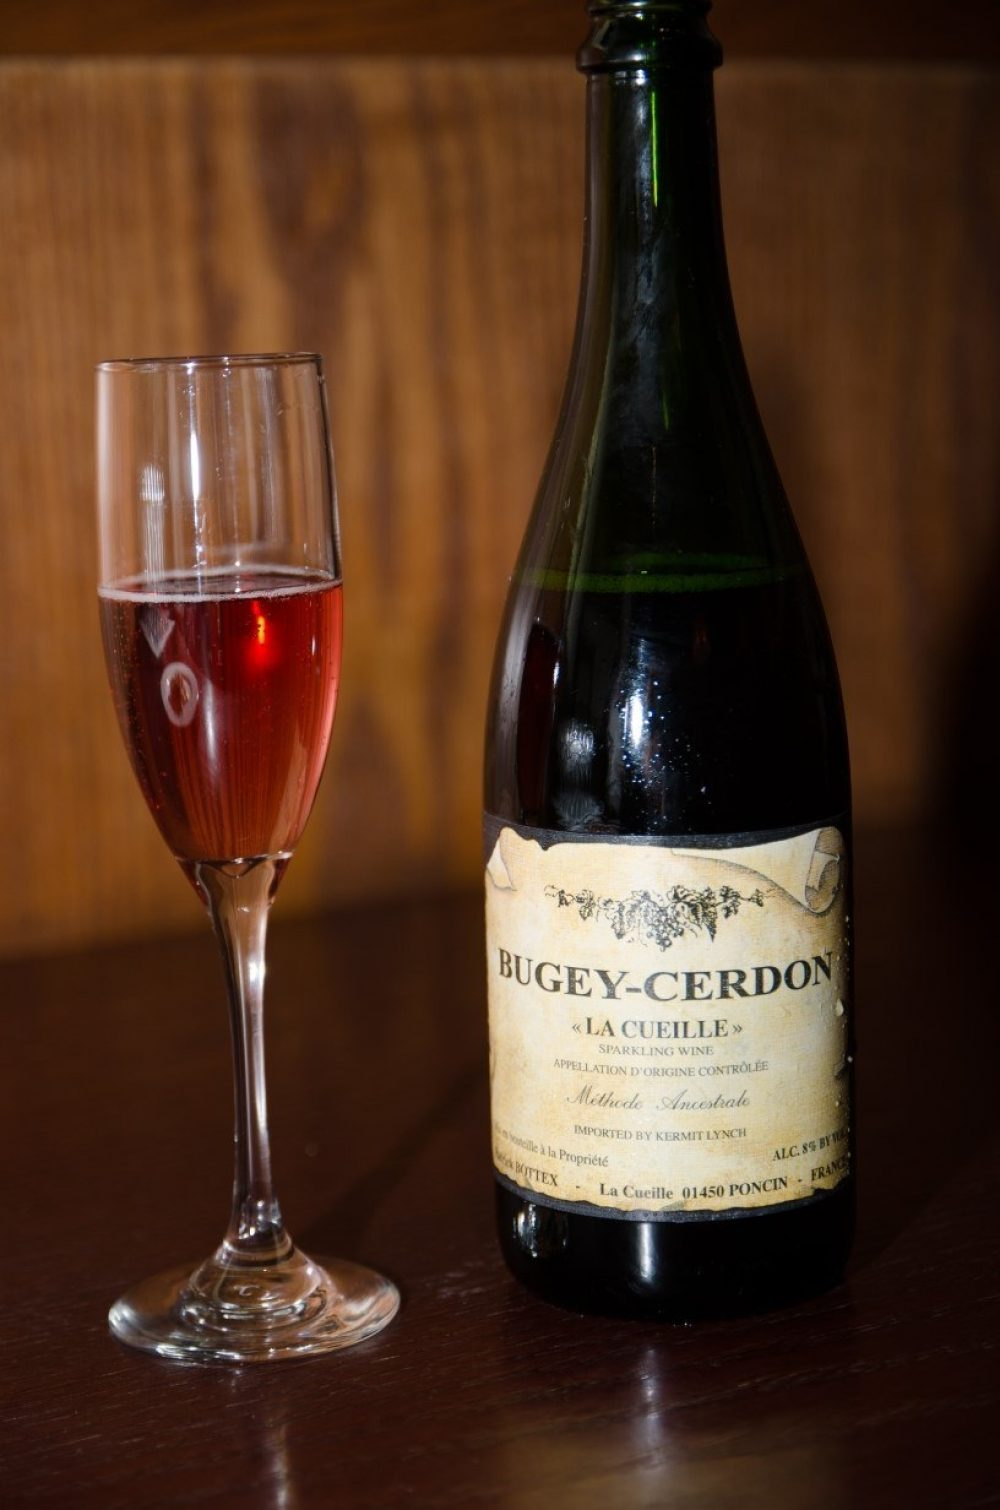 Bugey Cerdon 15 Per Blas 52 Per Bottle